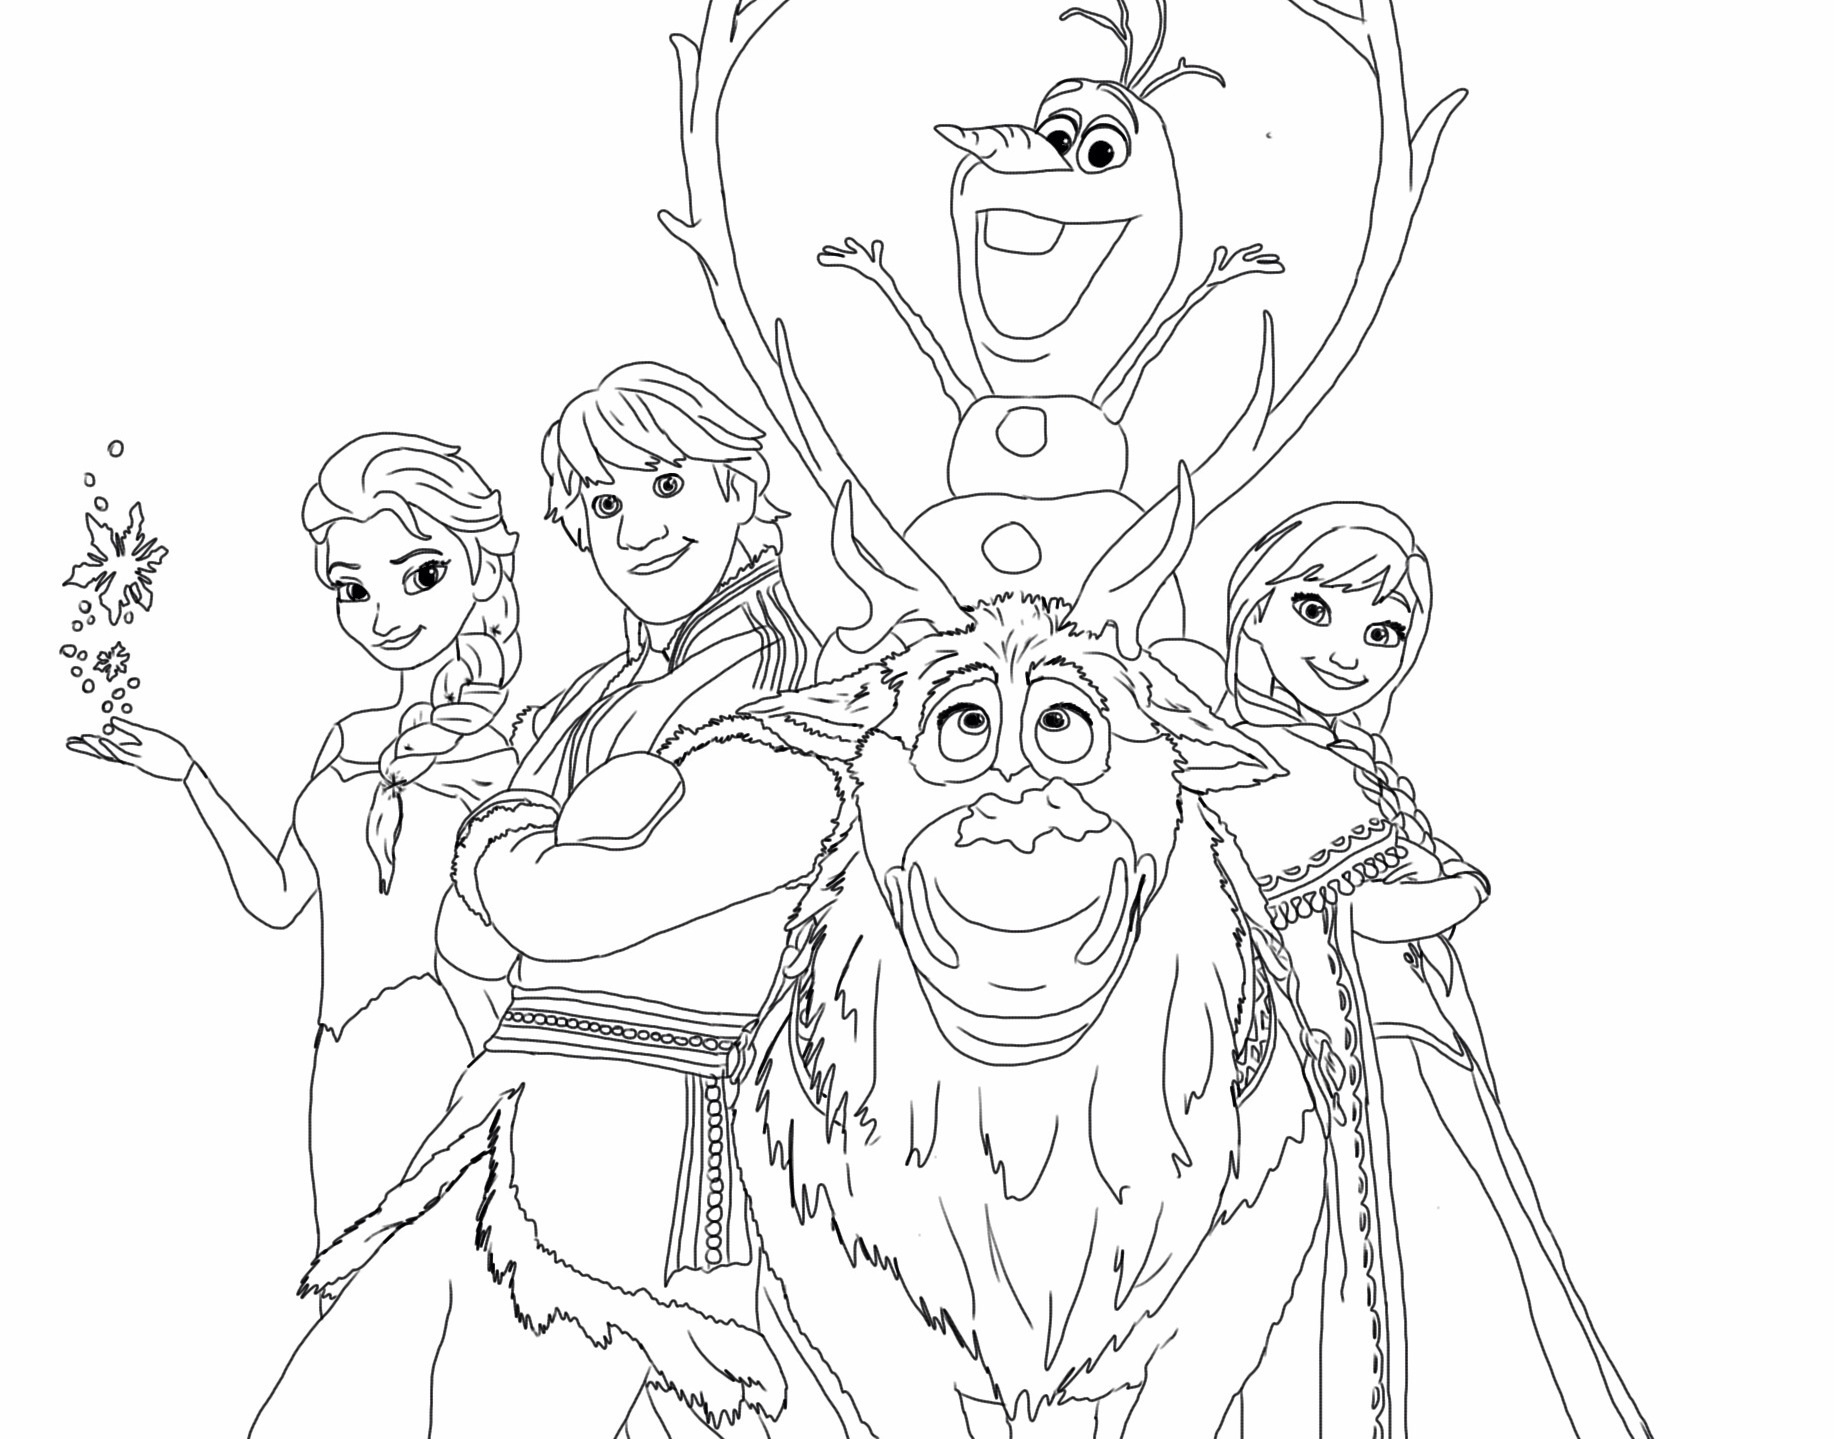 how to draw frozen characters frozen characters drawing at getdrawings free download frozen how characters to draw